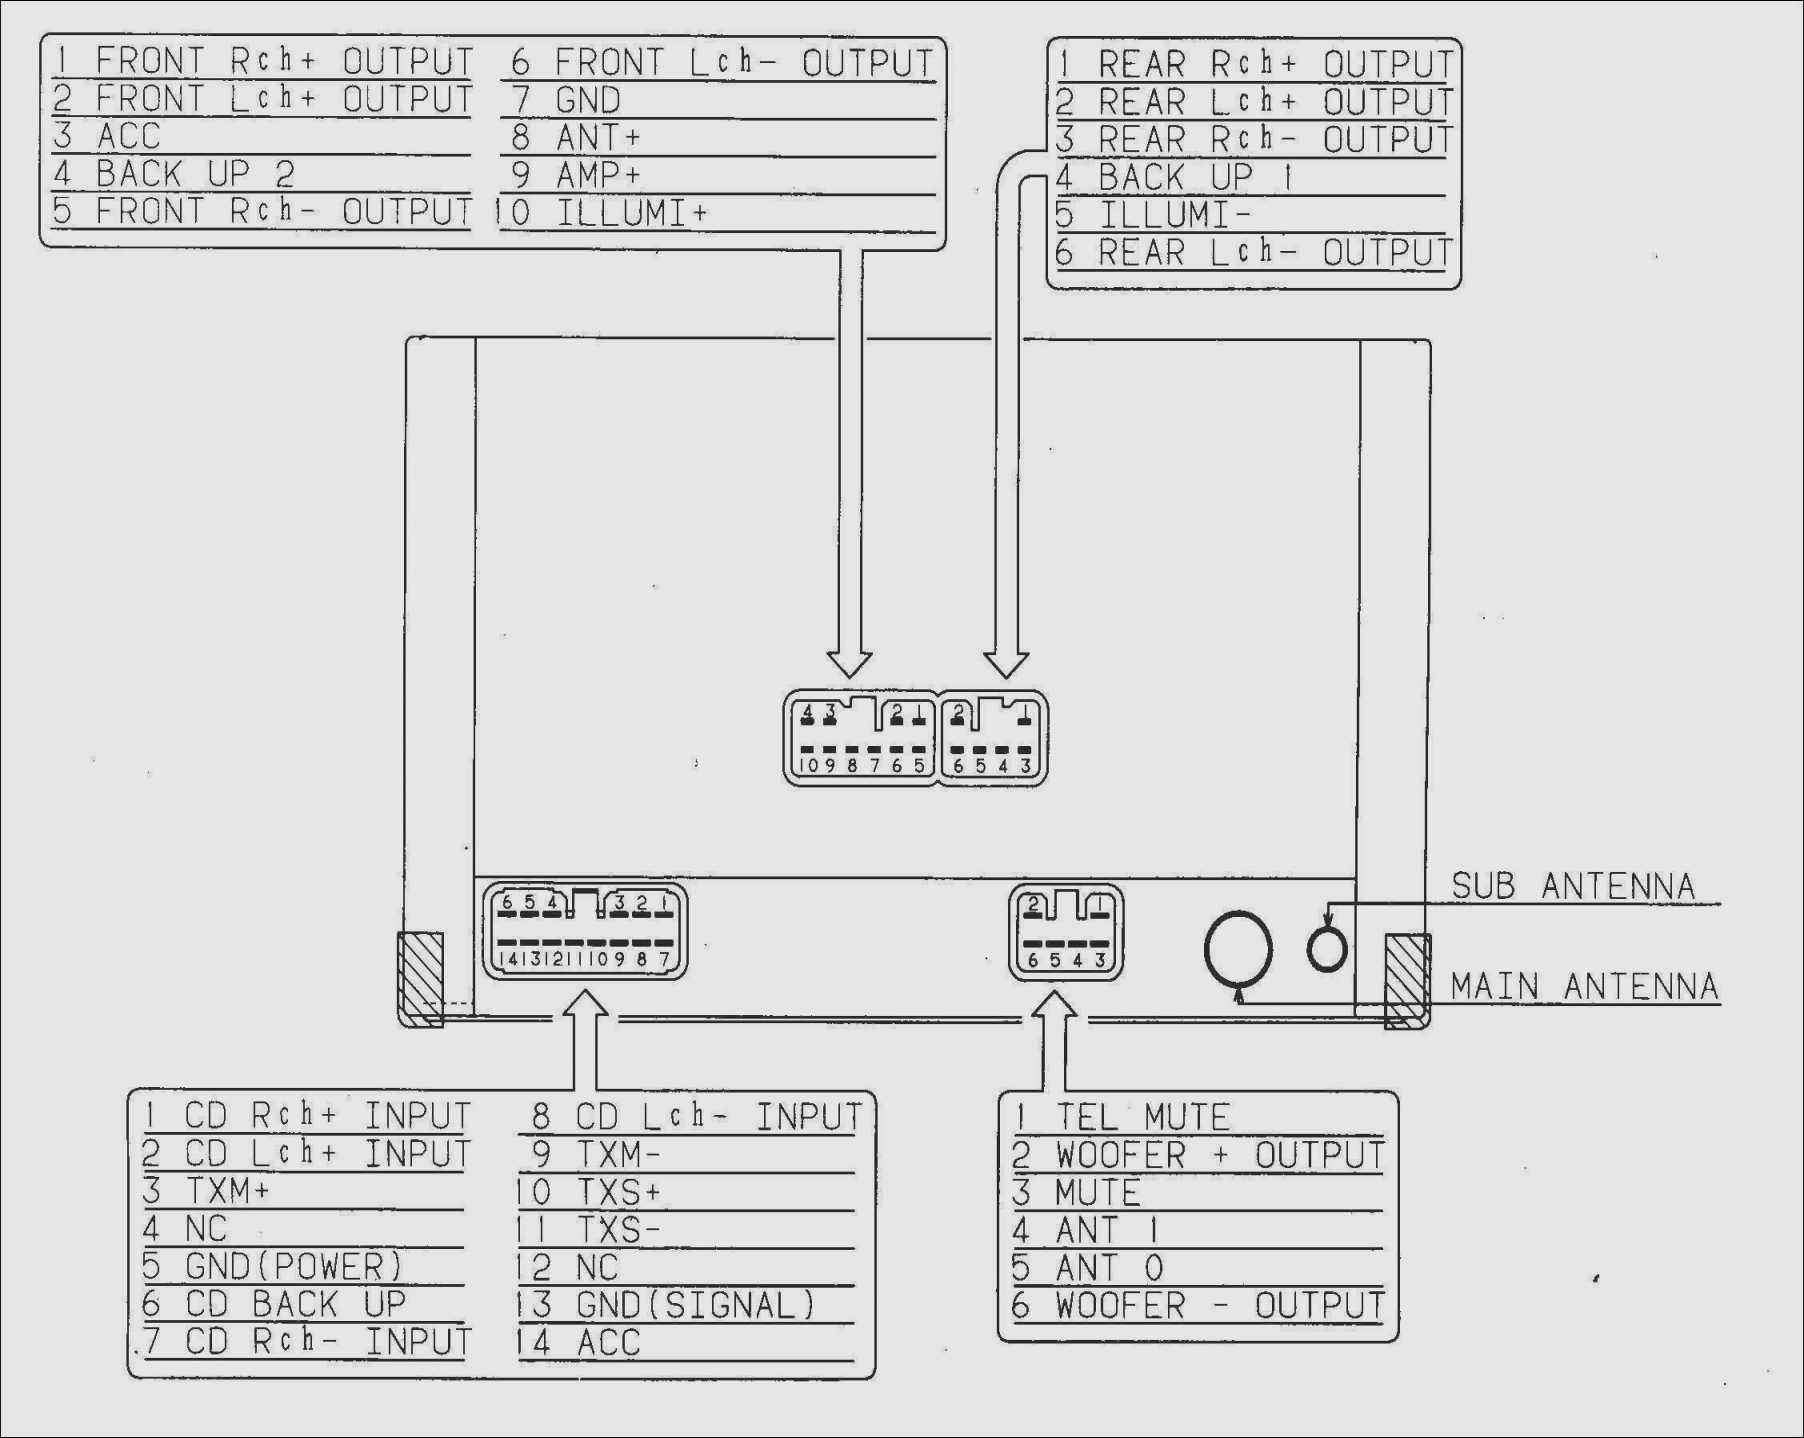 Harness Pioneer Diagram Wiring Avh200Bt | Wiring Diagram - Pioneer Avh-200Bt Wiring Diagram